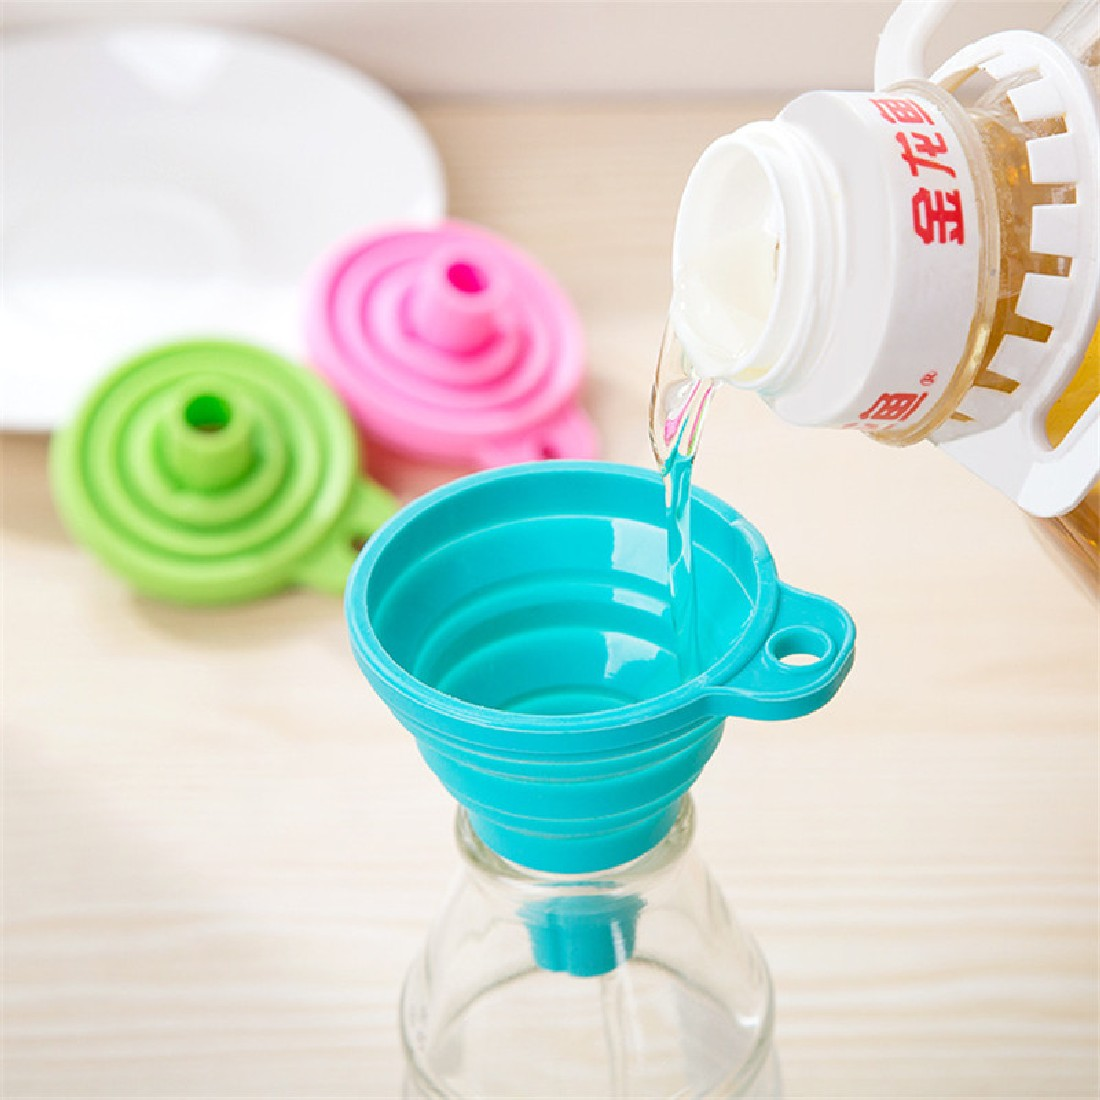 Protable Mini <font><b>Silicone</b></font> Gel Funnel Hopper Foldable Funnel <font><b>Kitchen</b></font> Cooking <font><b>Tools</b></font> Accessories Gadgets Funnel image